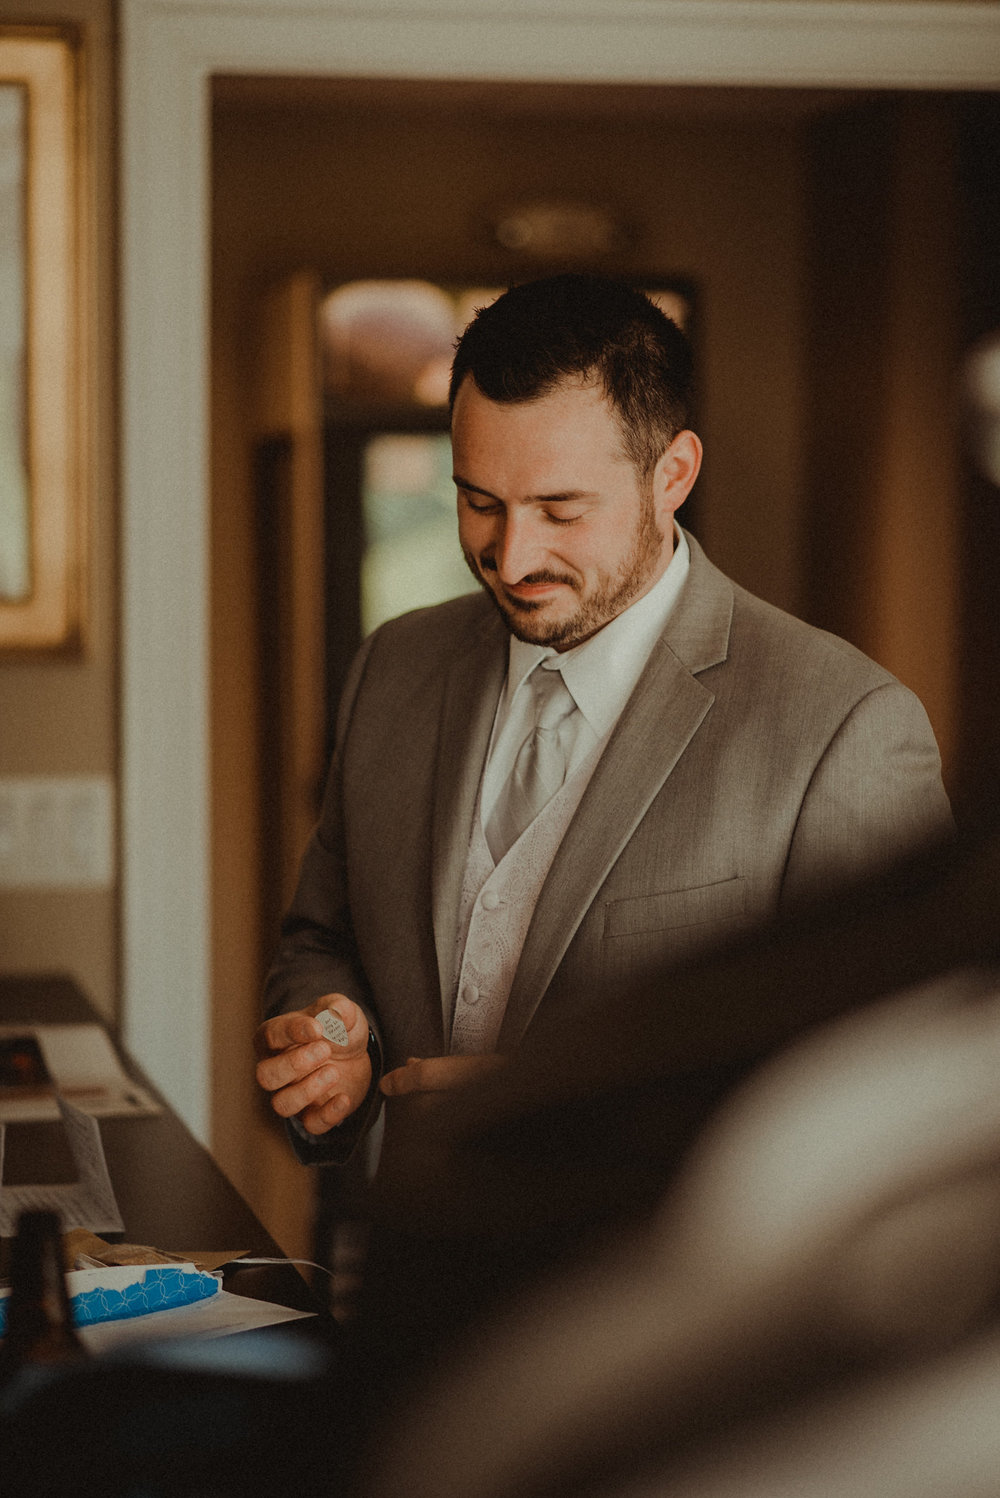 Groom receiving gift from bride